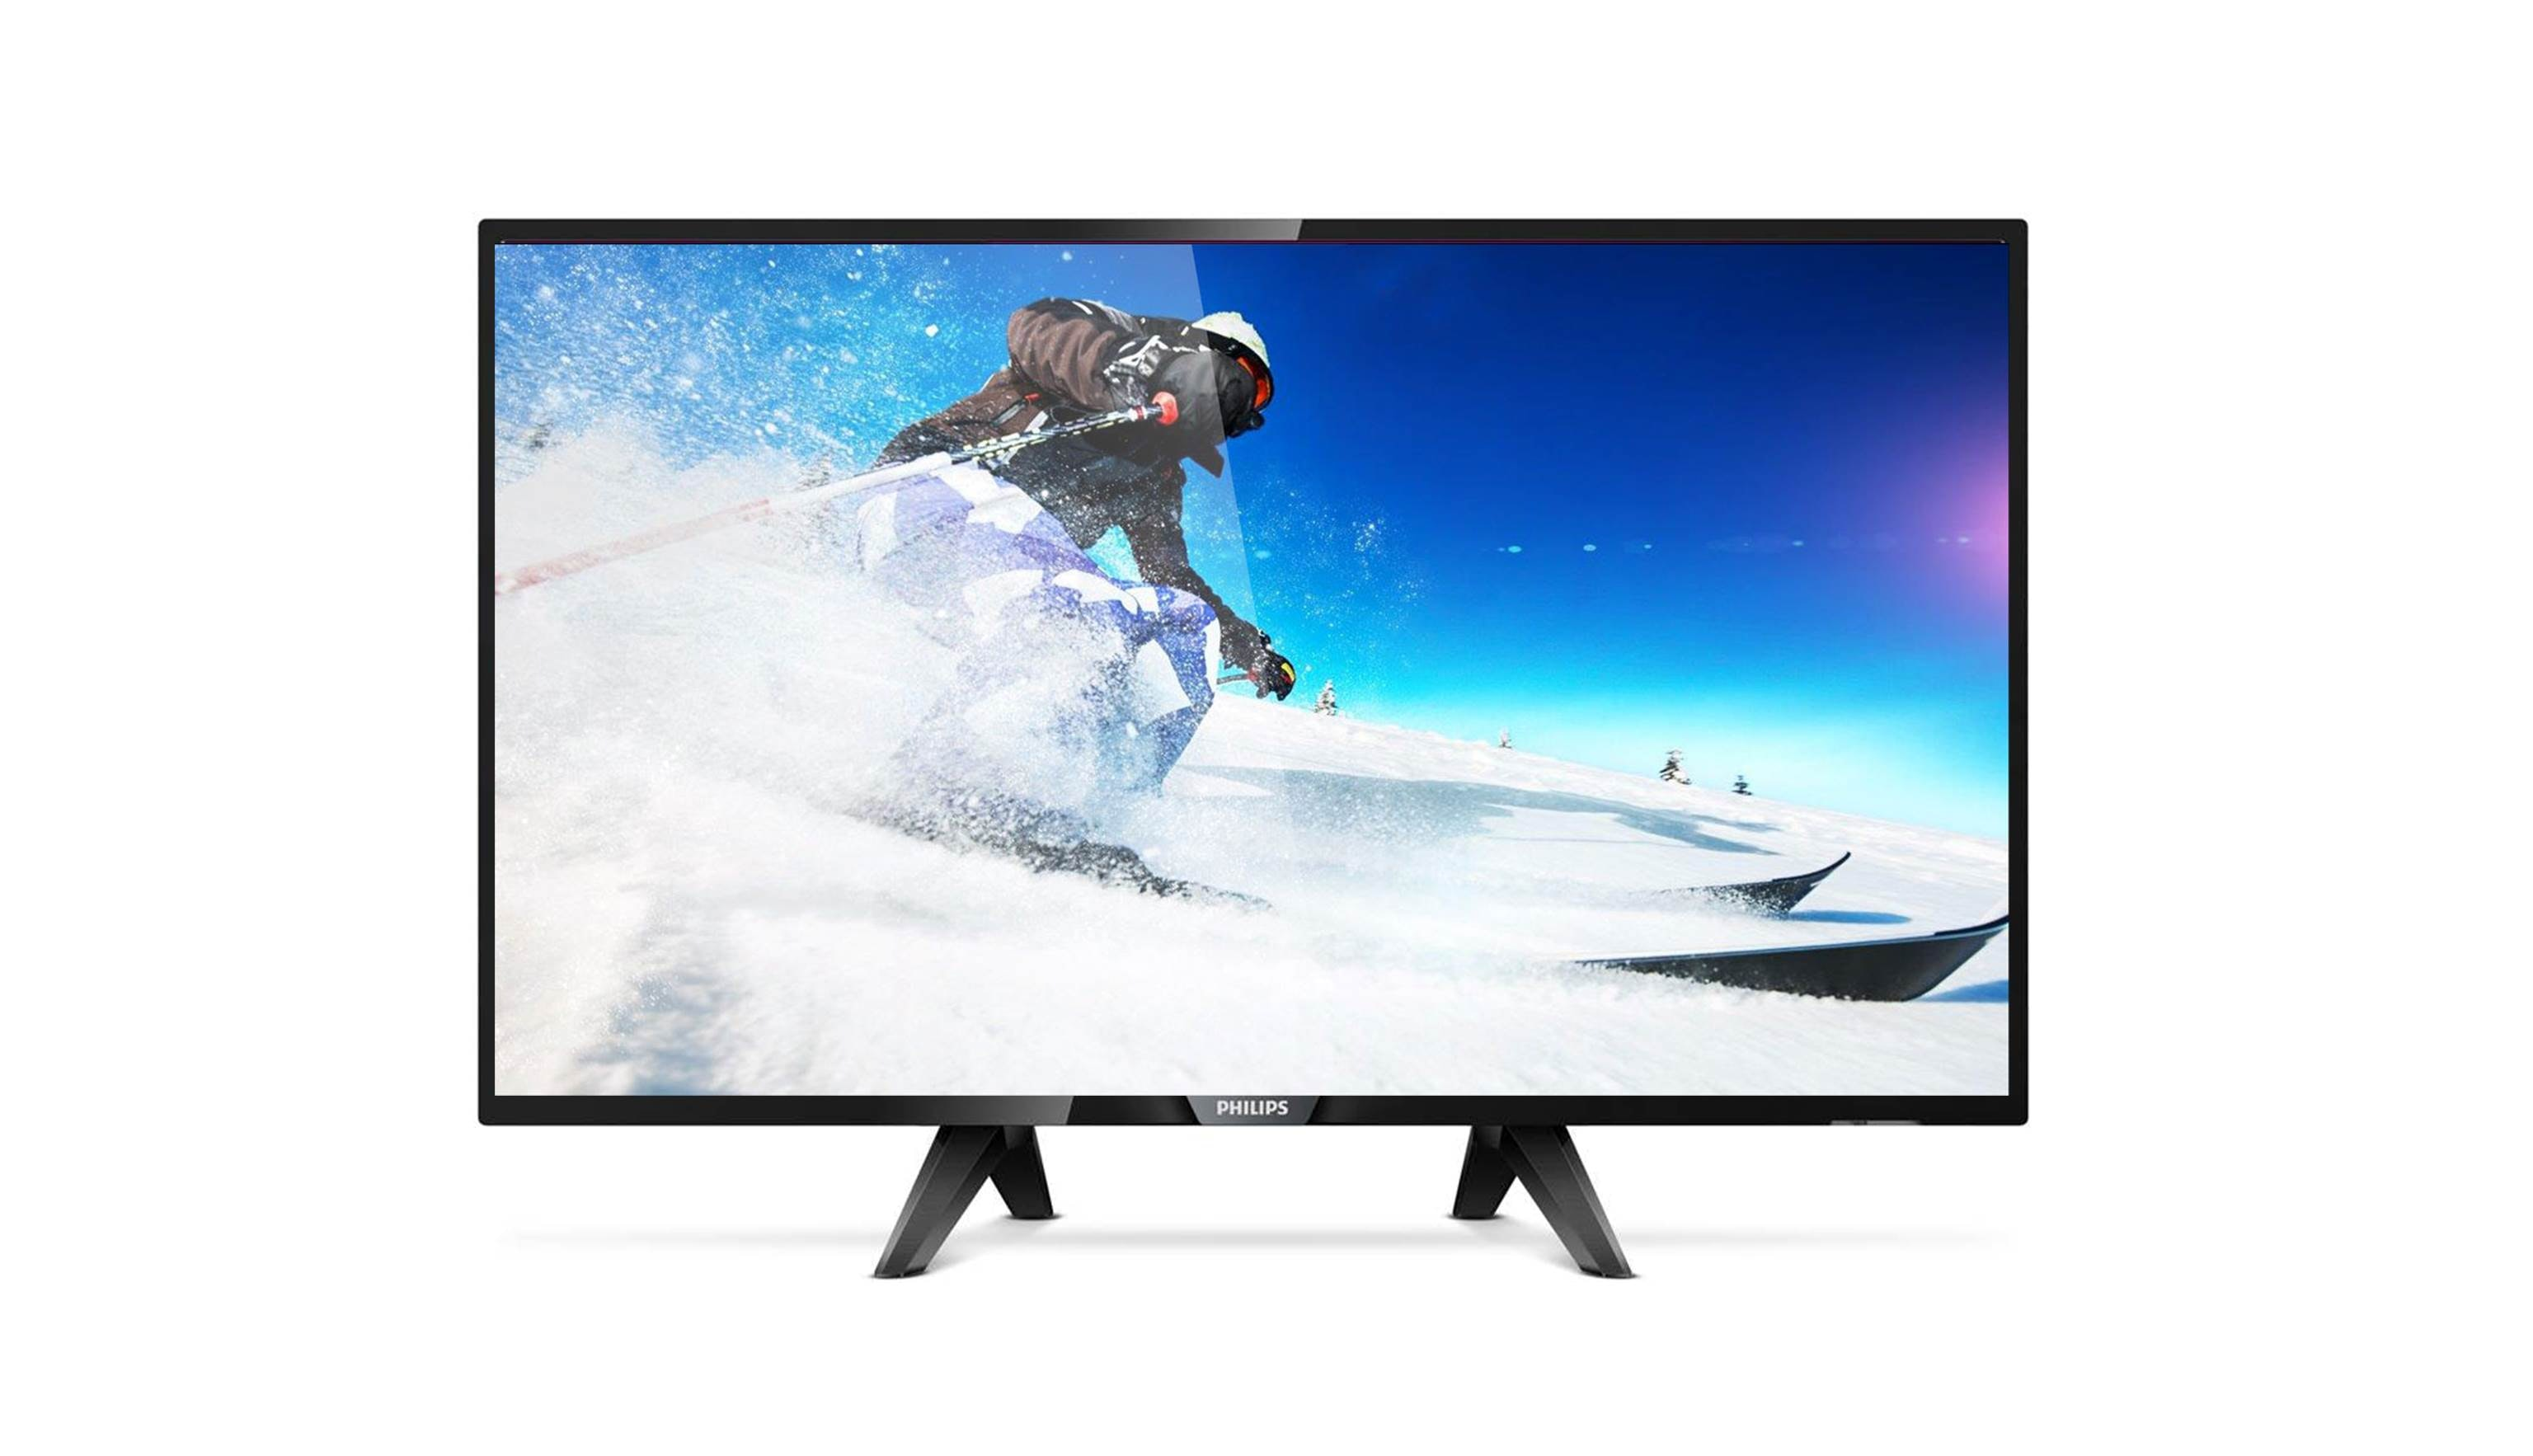 Philips 32PFT5102 32 Ultra Slim LED TV